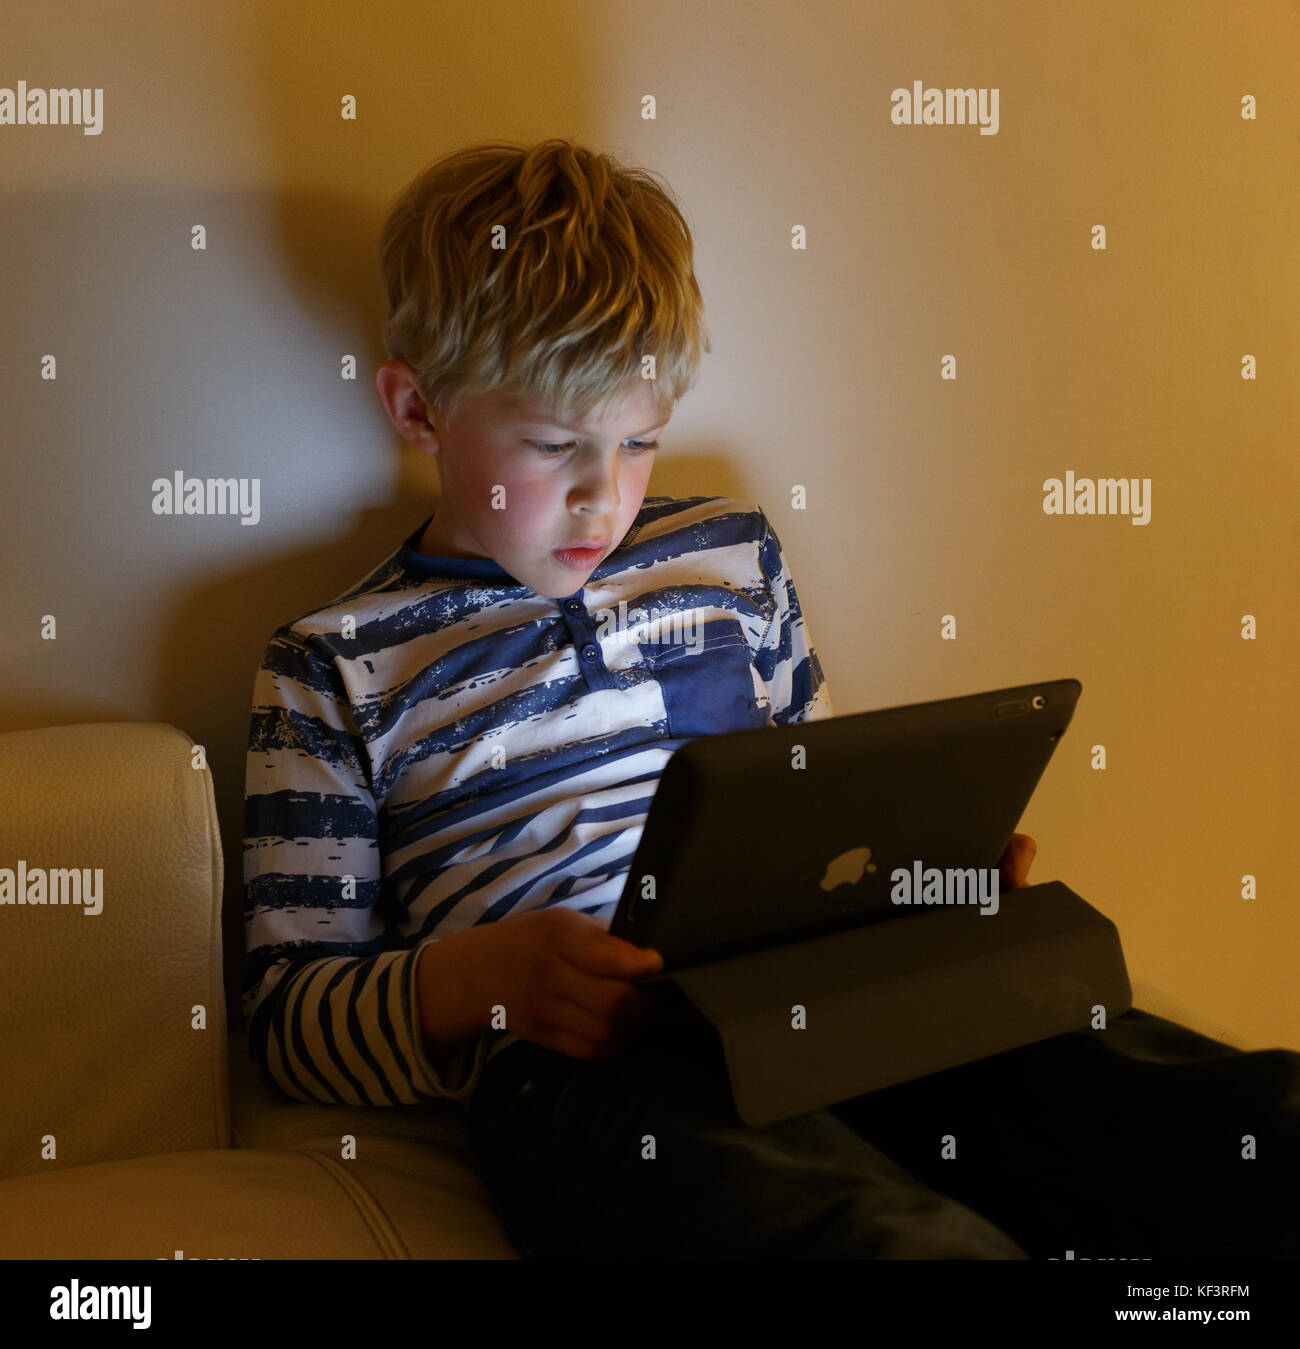 Boy watching Ipad and face is lit by the screen - Stock Image